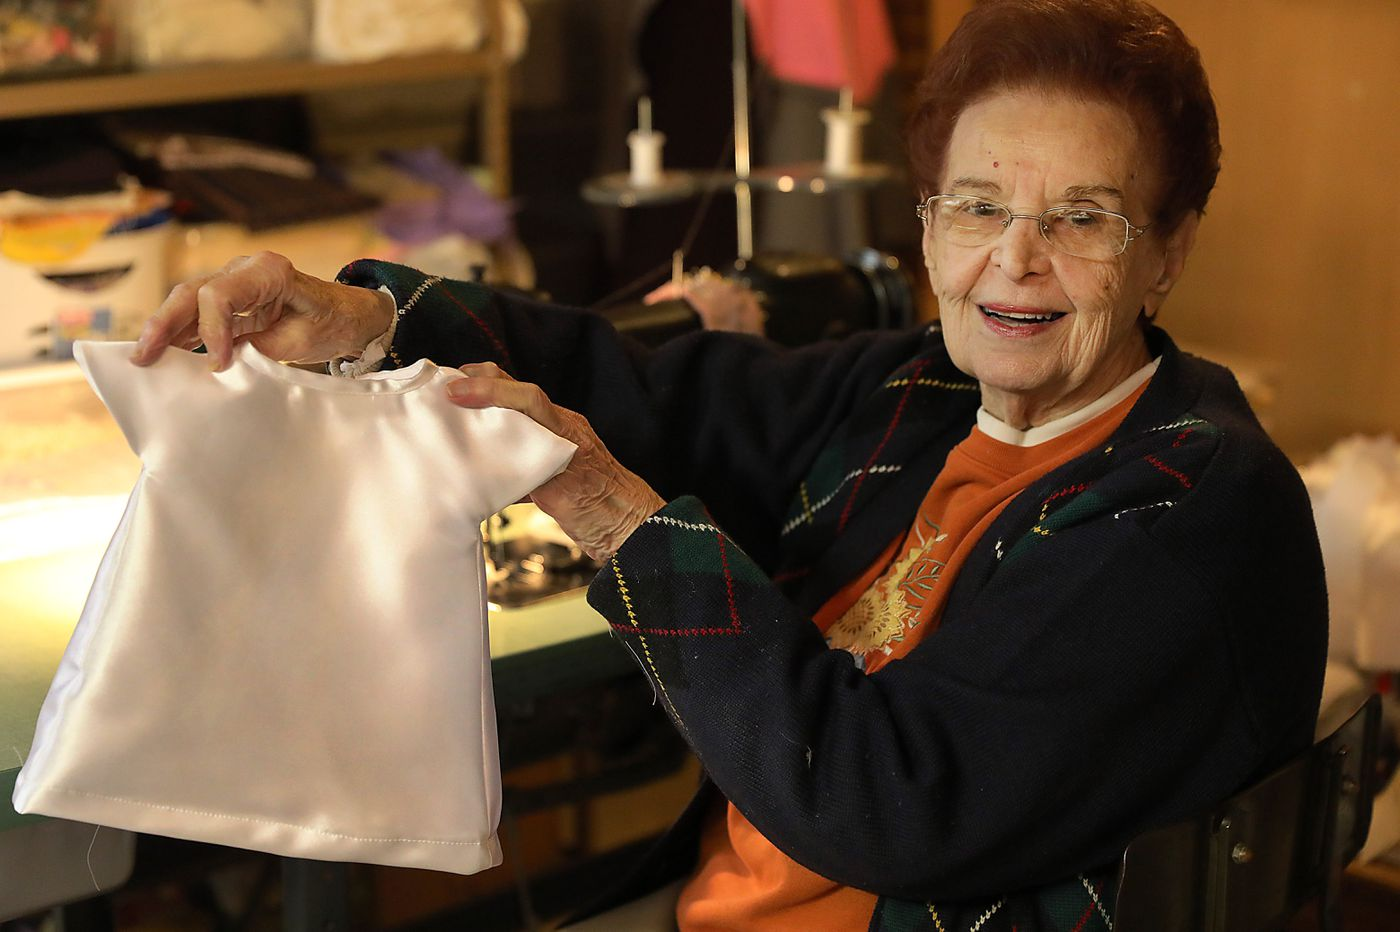 'Angel' outfits offer final tributes for babies